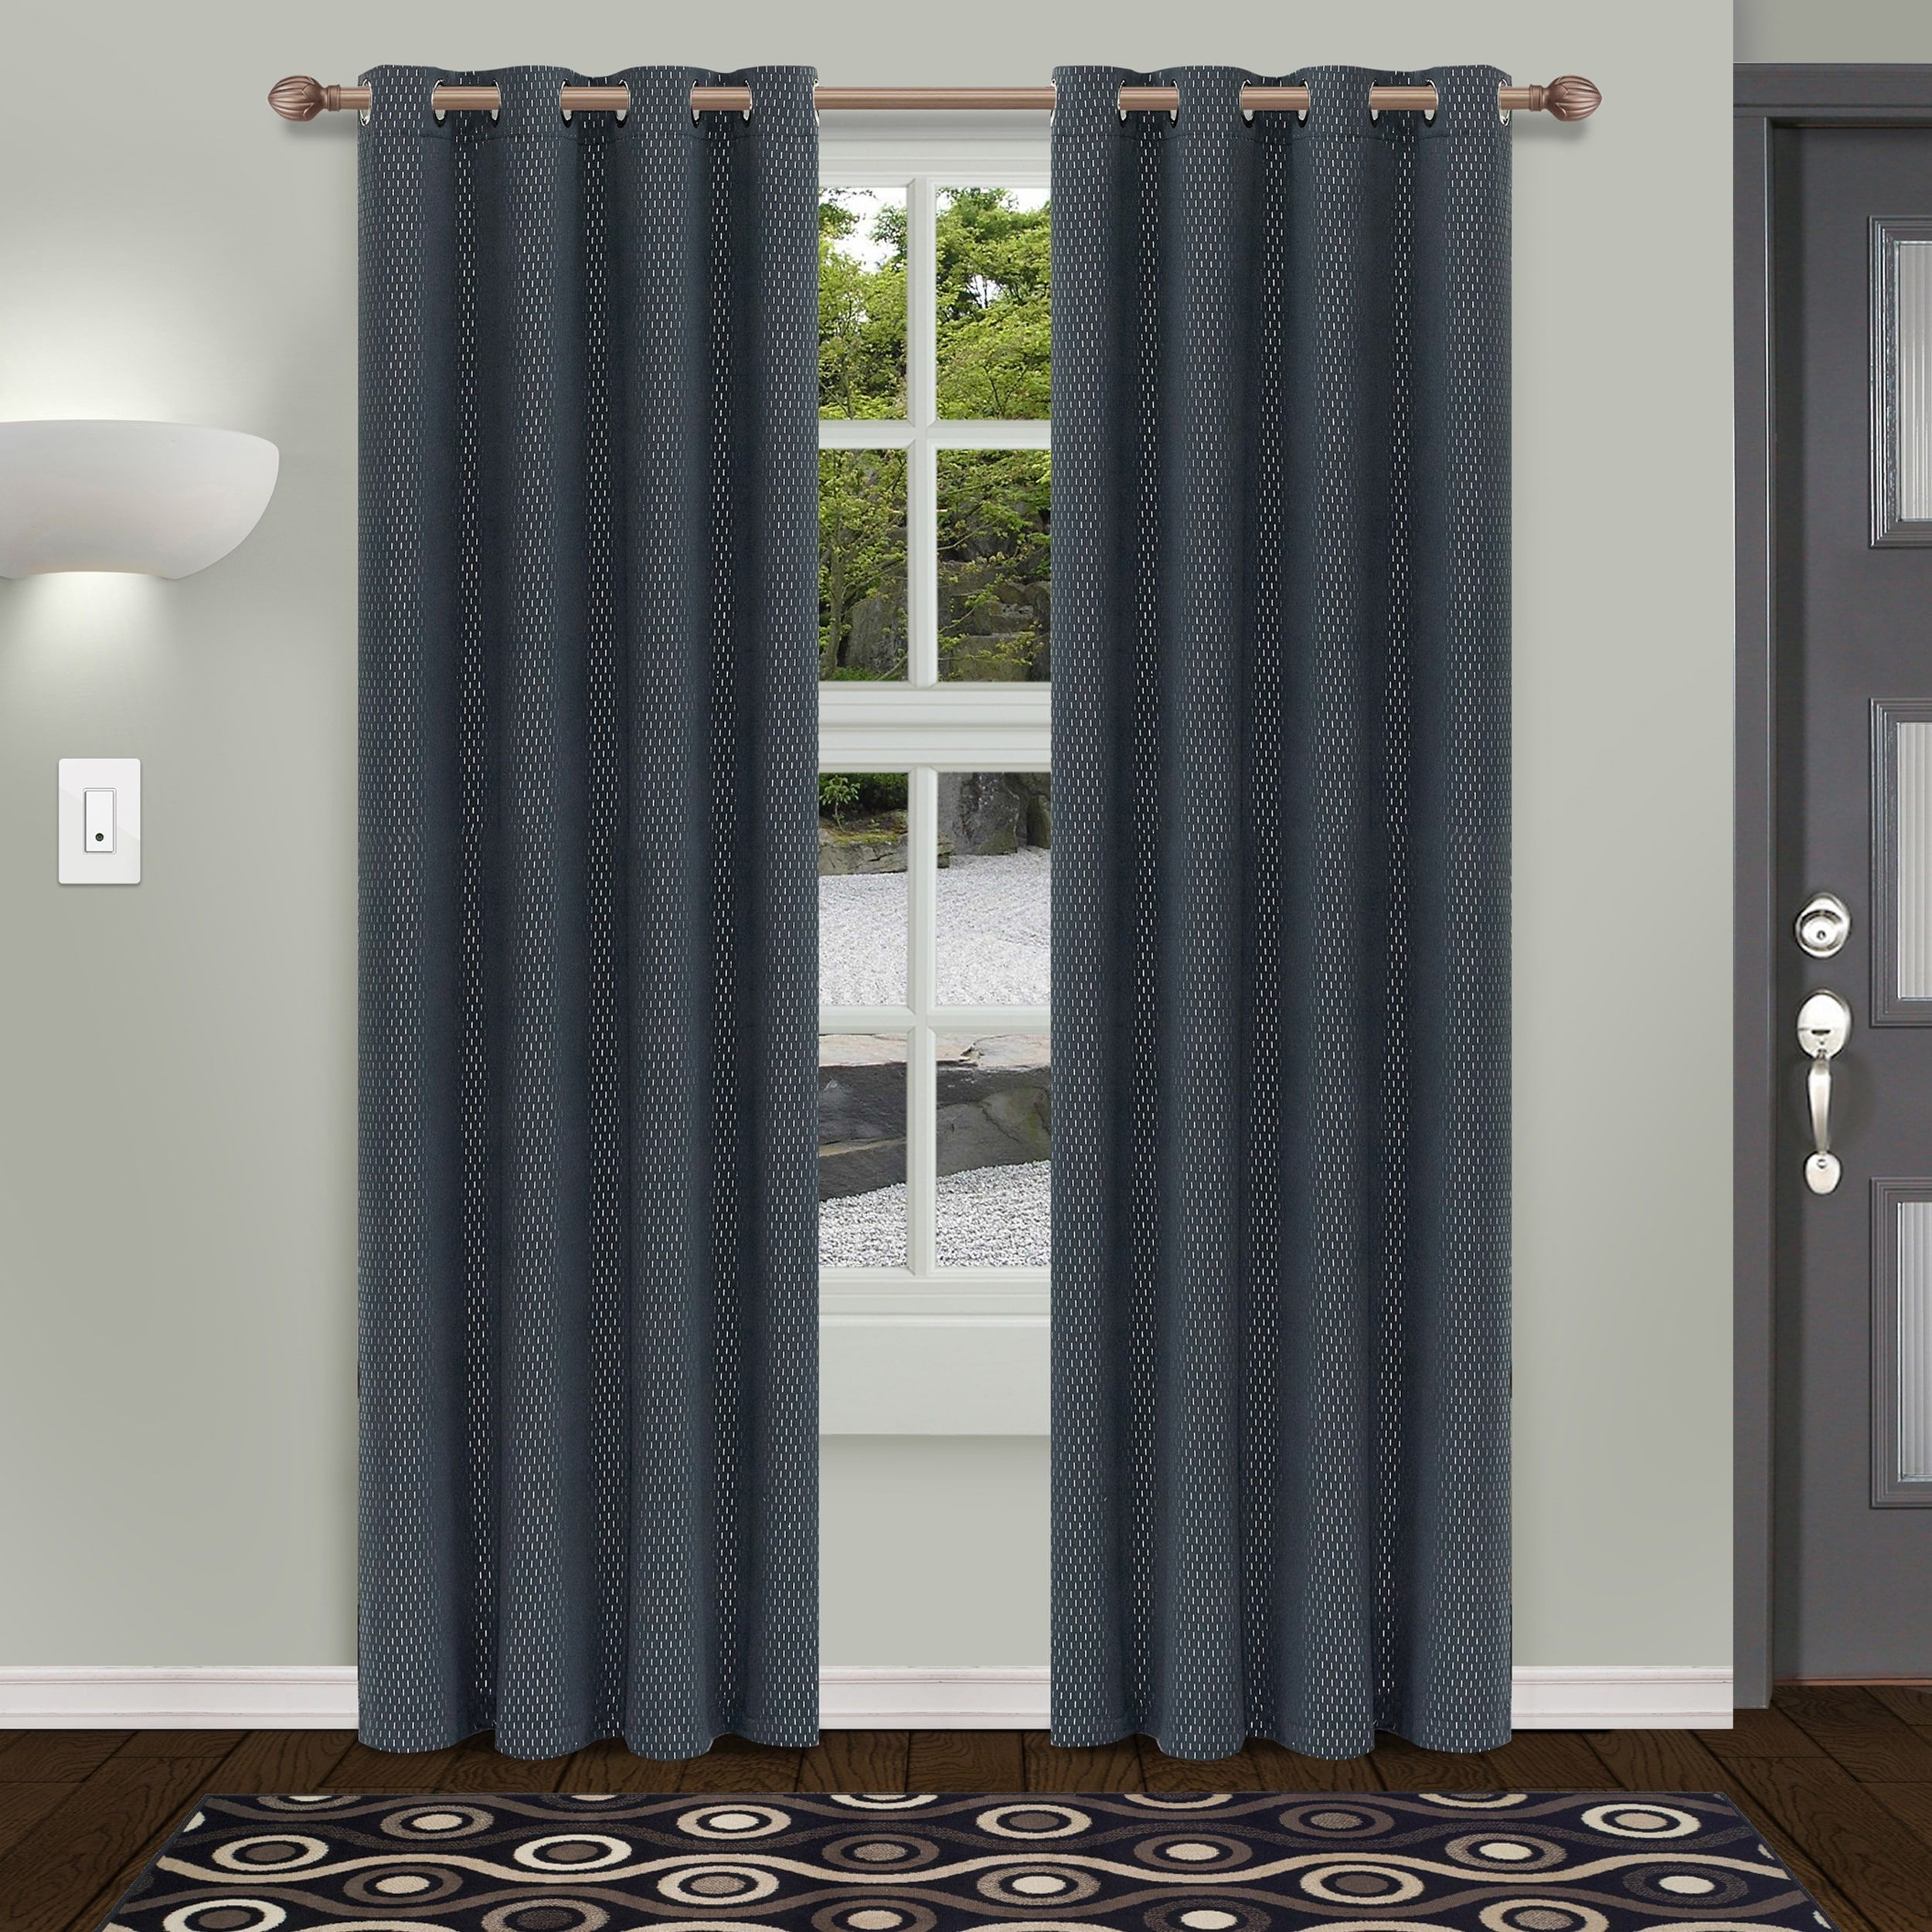 Superior Shimmer Insulated Thermal Blackout Grommet Curtain Throughout Superior Solid Insulated Thermal Blackout Grommet Curtain Panel Pairs (View 5 of 30)